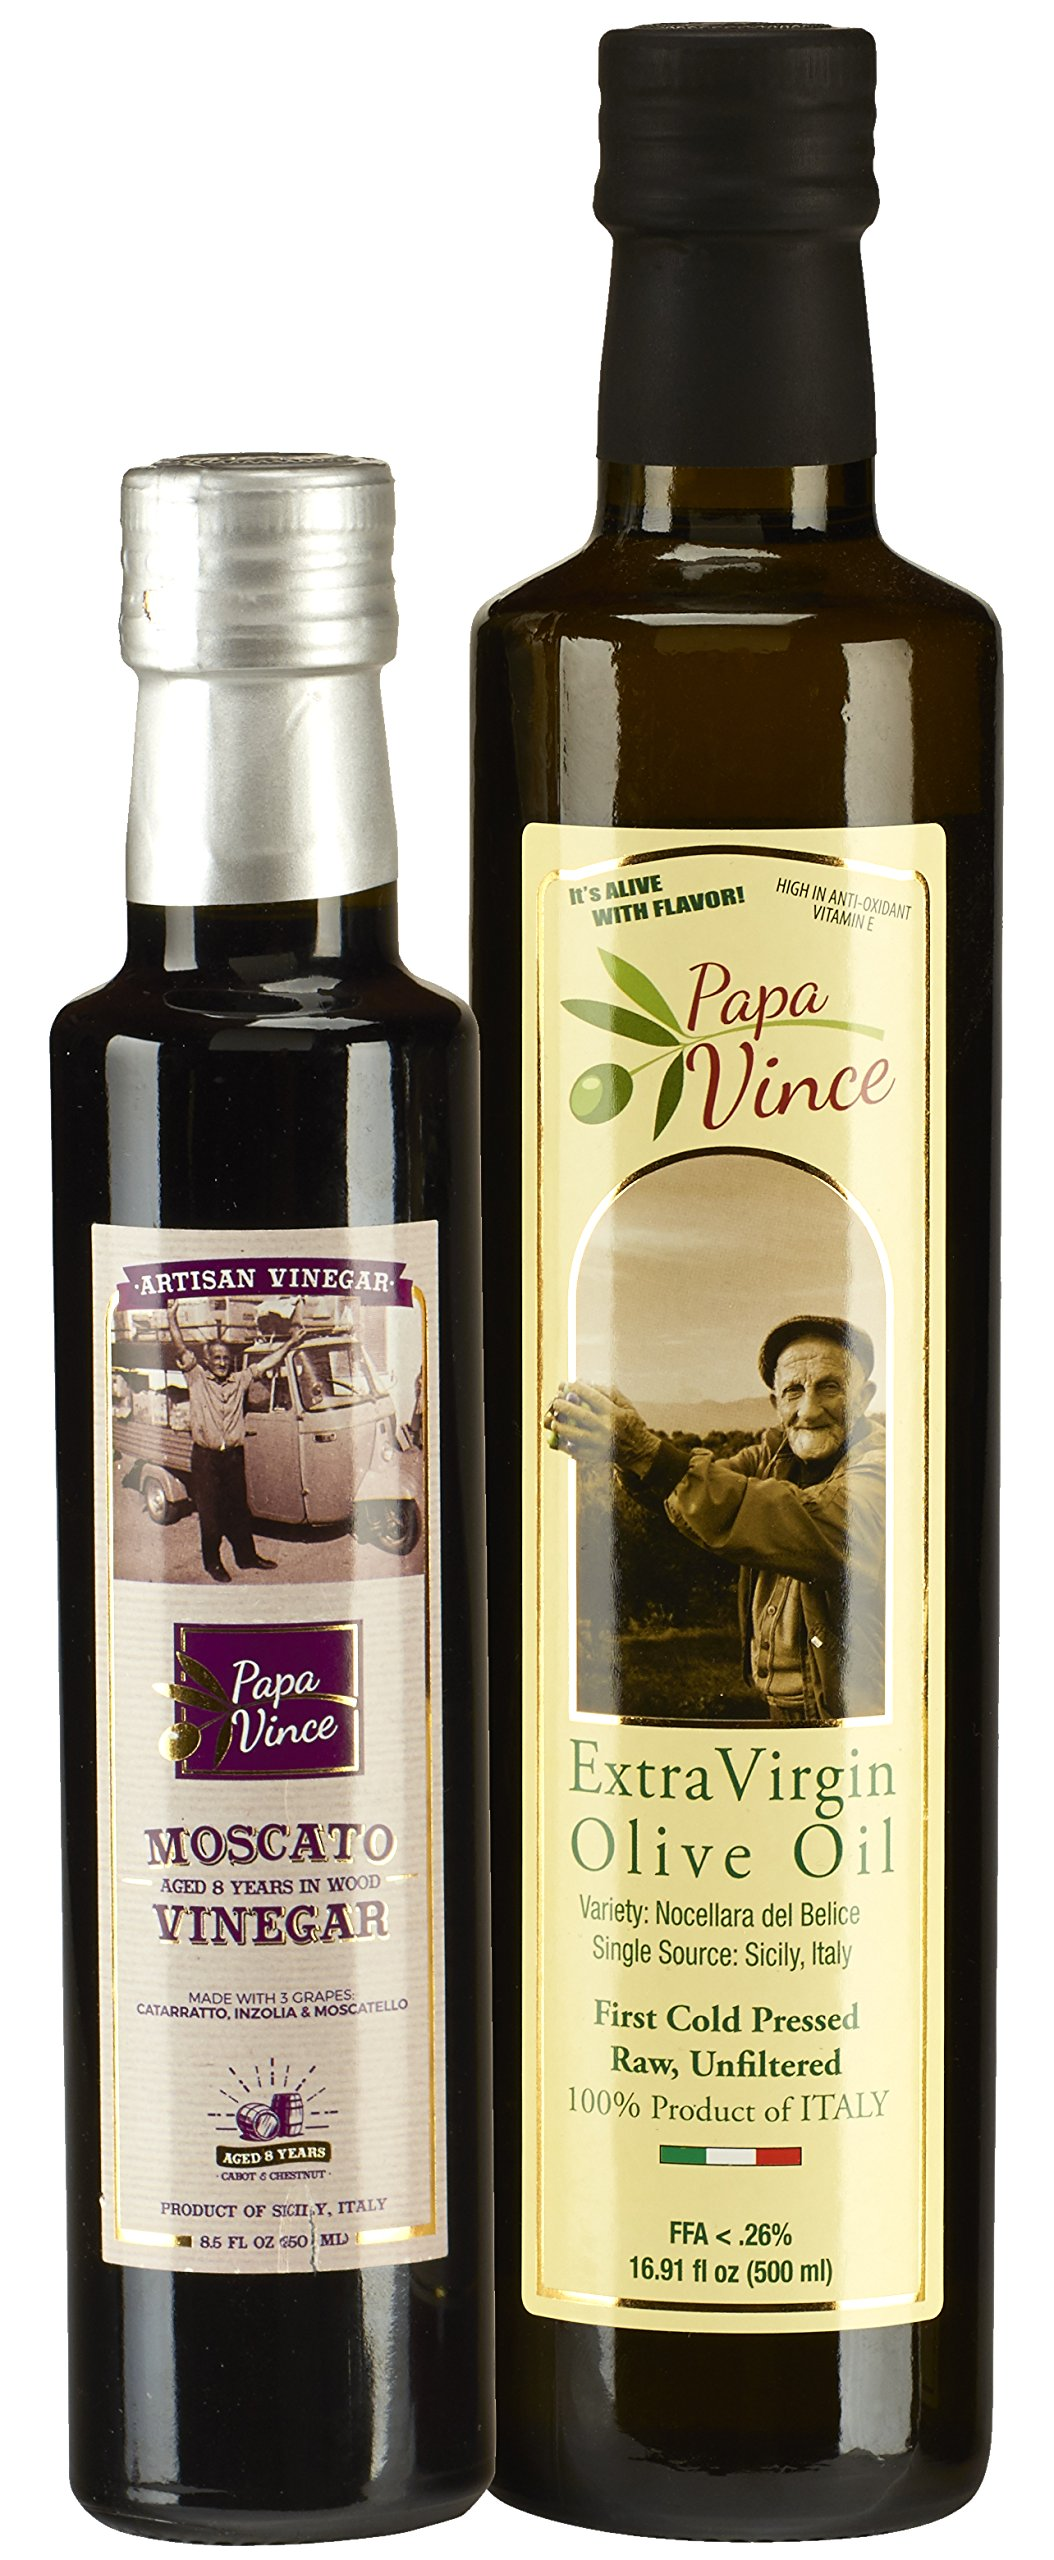 Papa Vince Olive Oil Extra Virgin + Balsamic Vinegar: EVOO First Cold Pressed 16.9 fl oz, Aged 8-years in wood 8.5 fl oz, Italian Salad Dressing Ingredients - Produced by our family in Sicily by Papa Vince (Image #1)